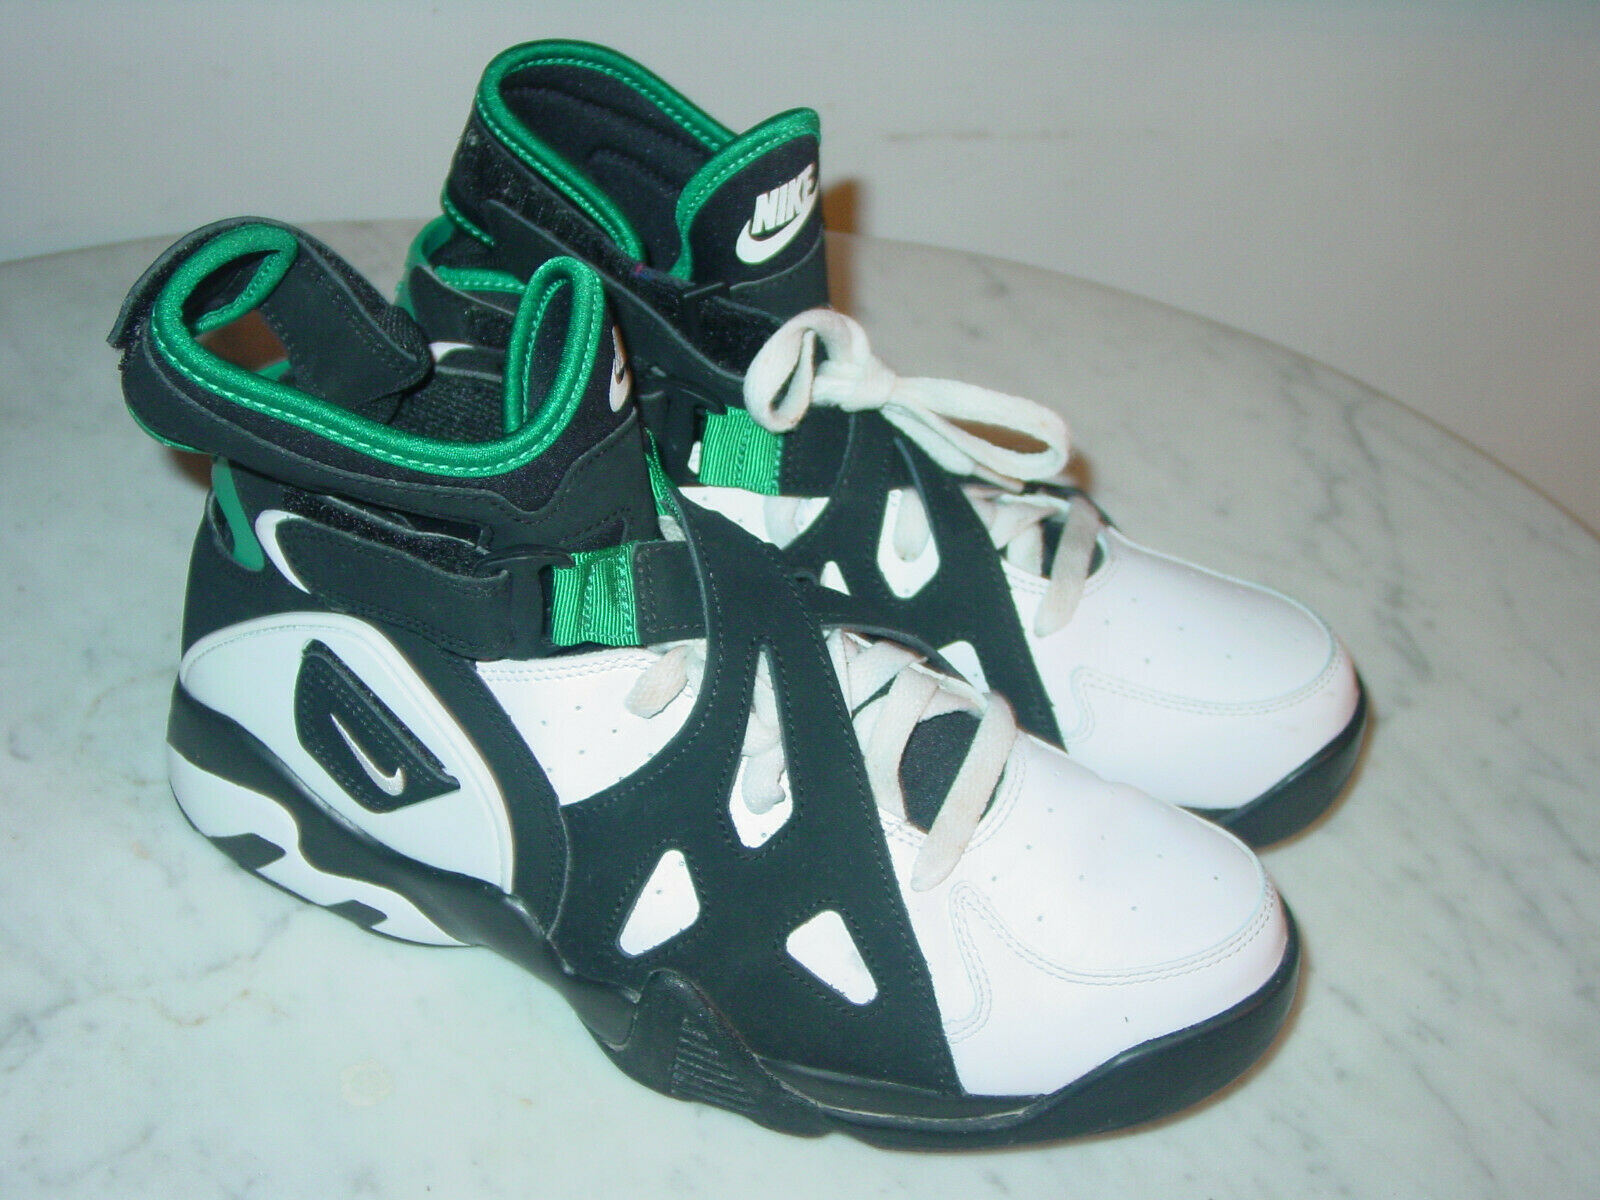 40a86077 2016 Nike Air Unlimited David Robinson Deep Emerald White shoes Size 8.5